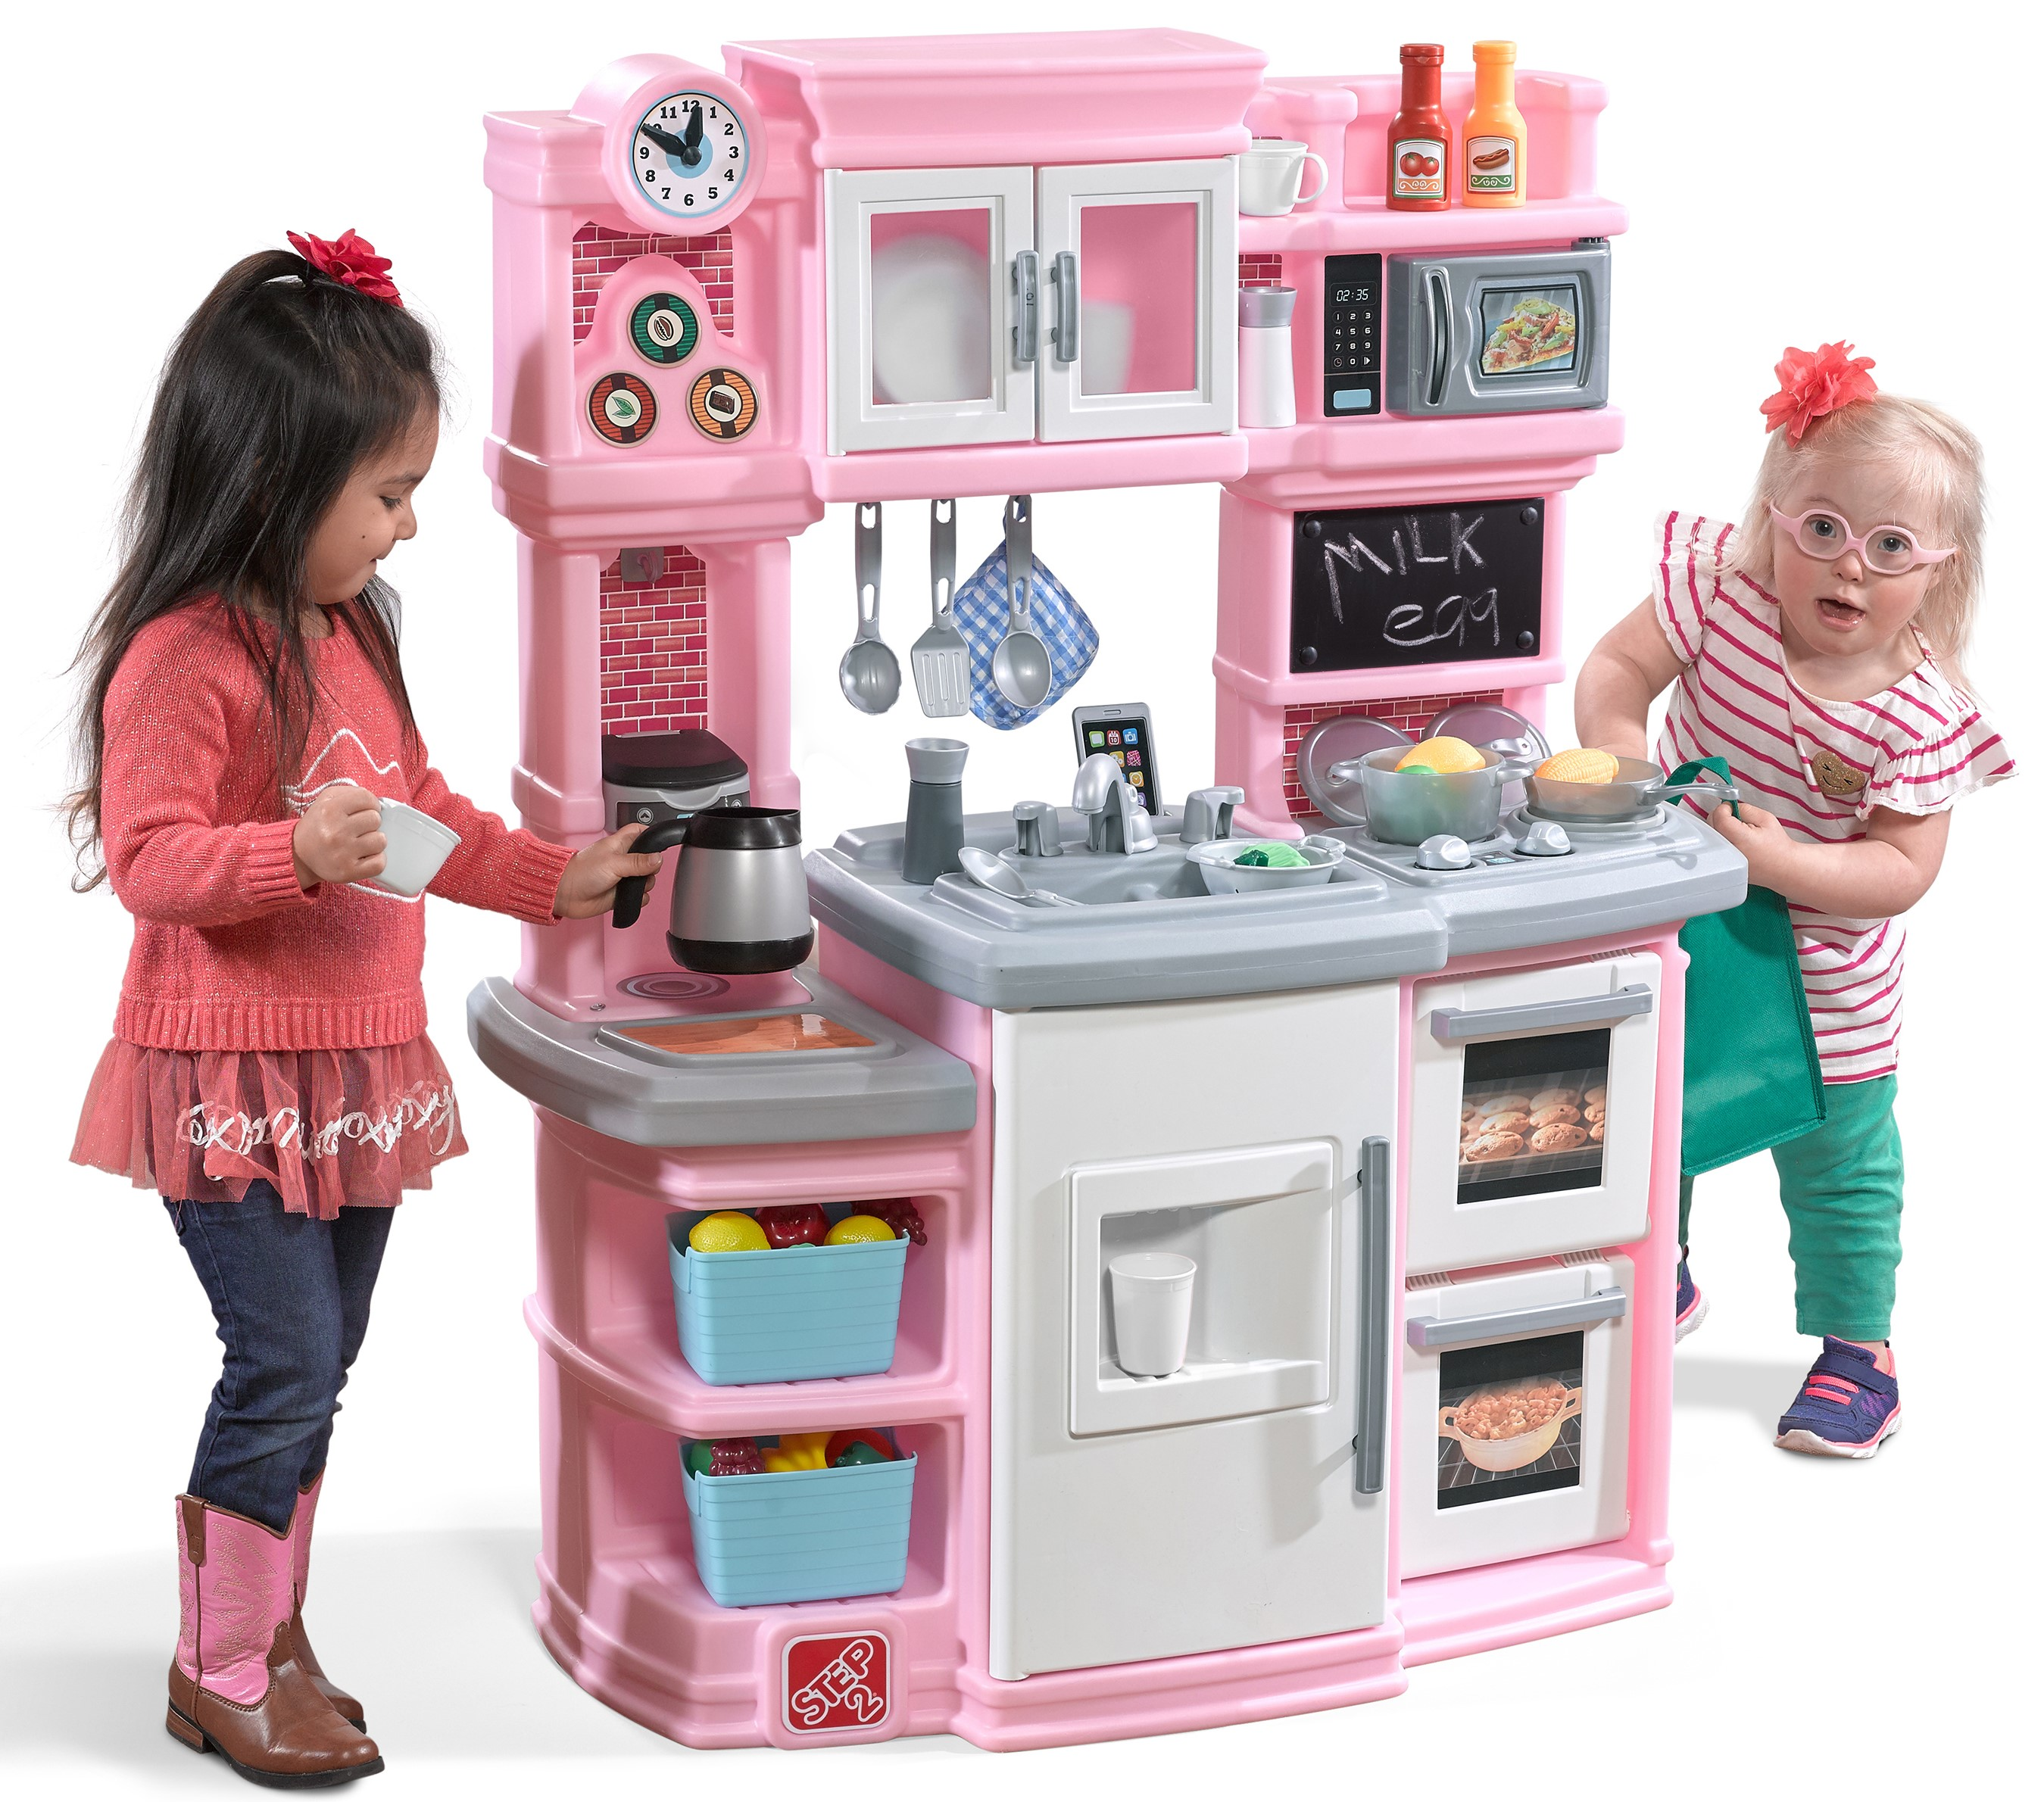 Step2 Great Gourmet Play Kitchen With Storage Bins And Accessory Play Set Pink Walmart Com Walmart Com